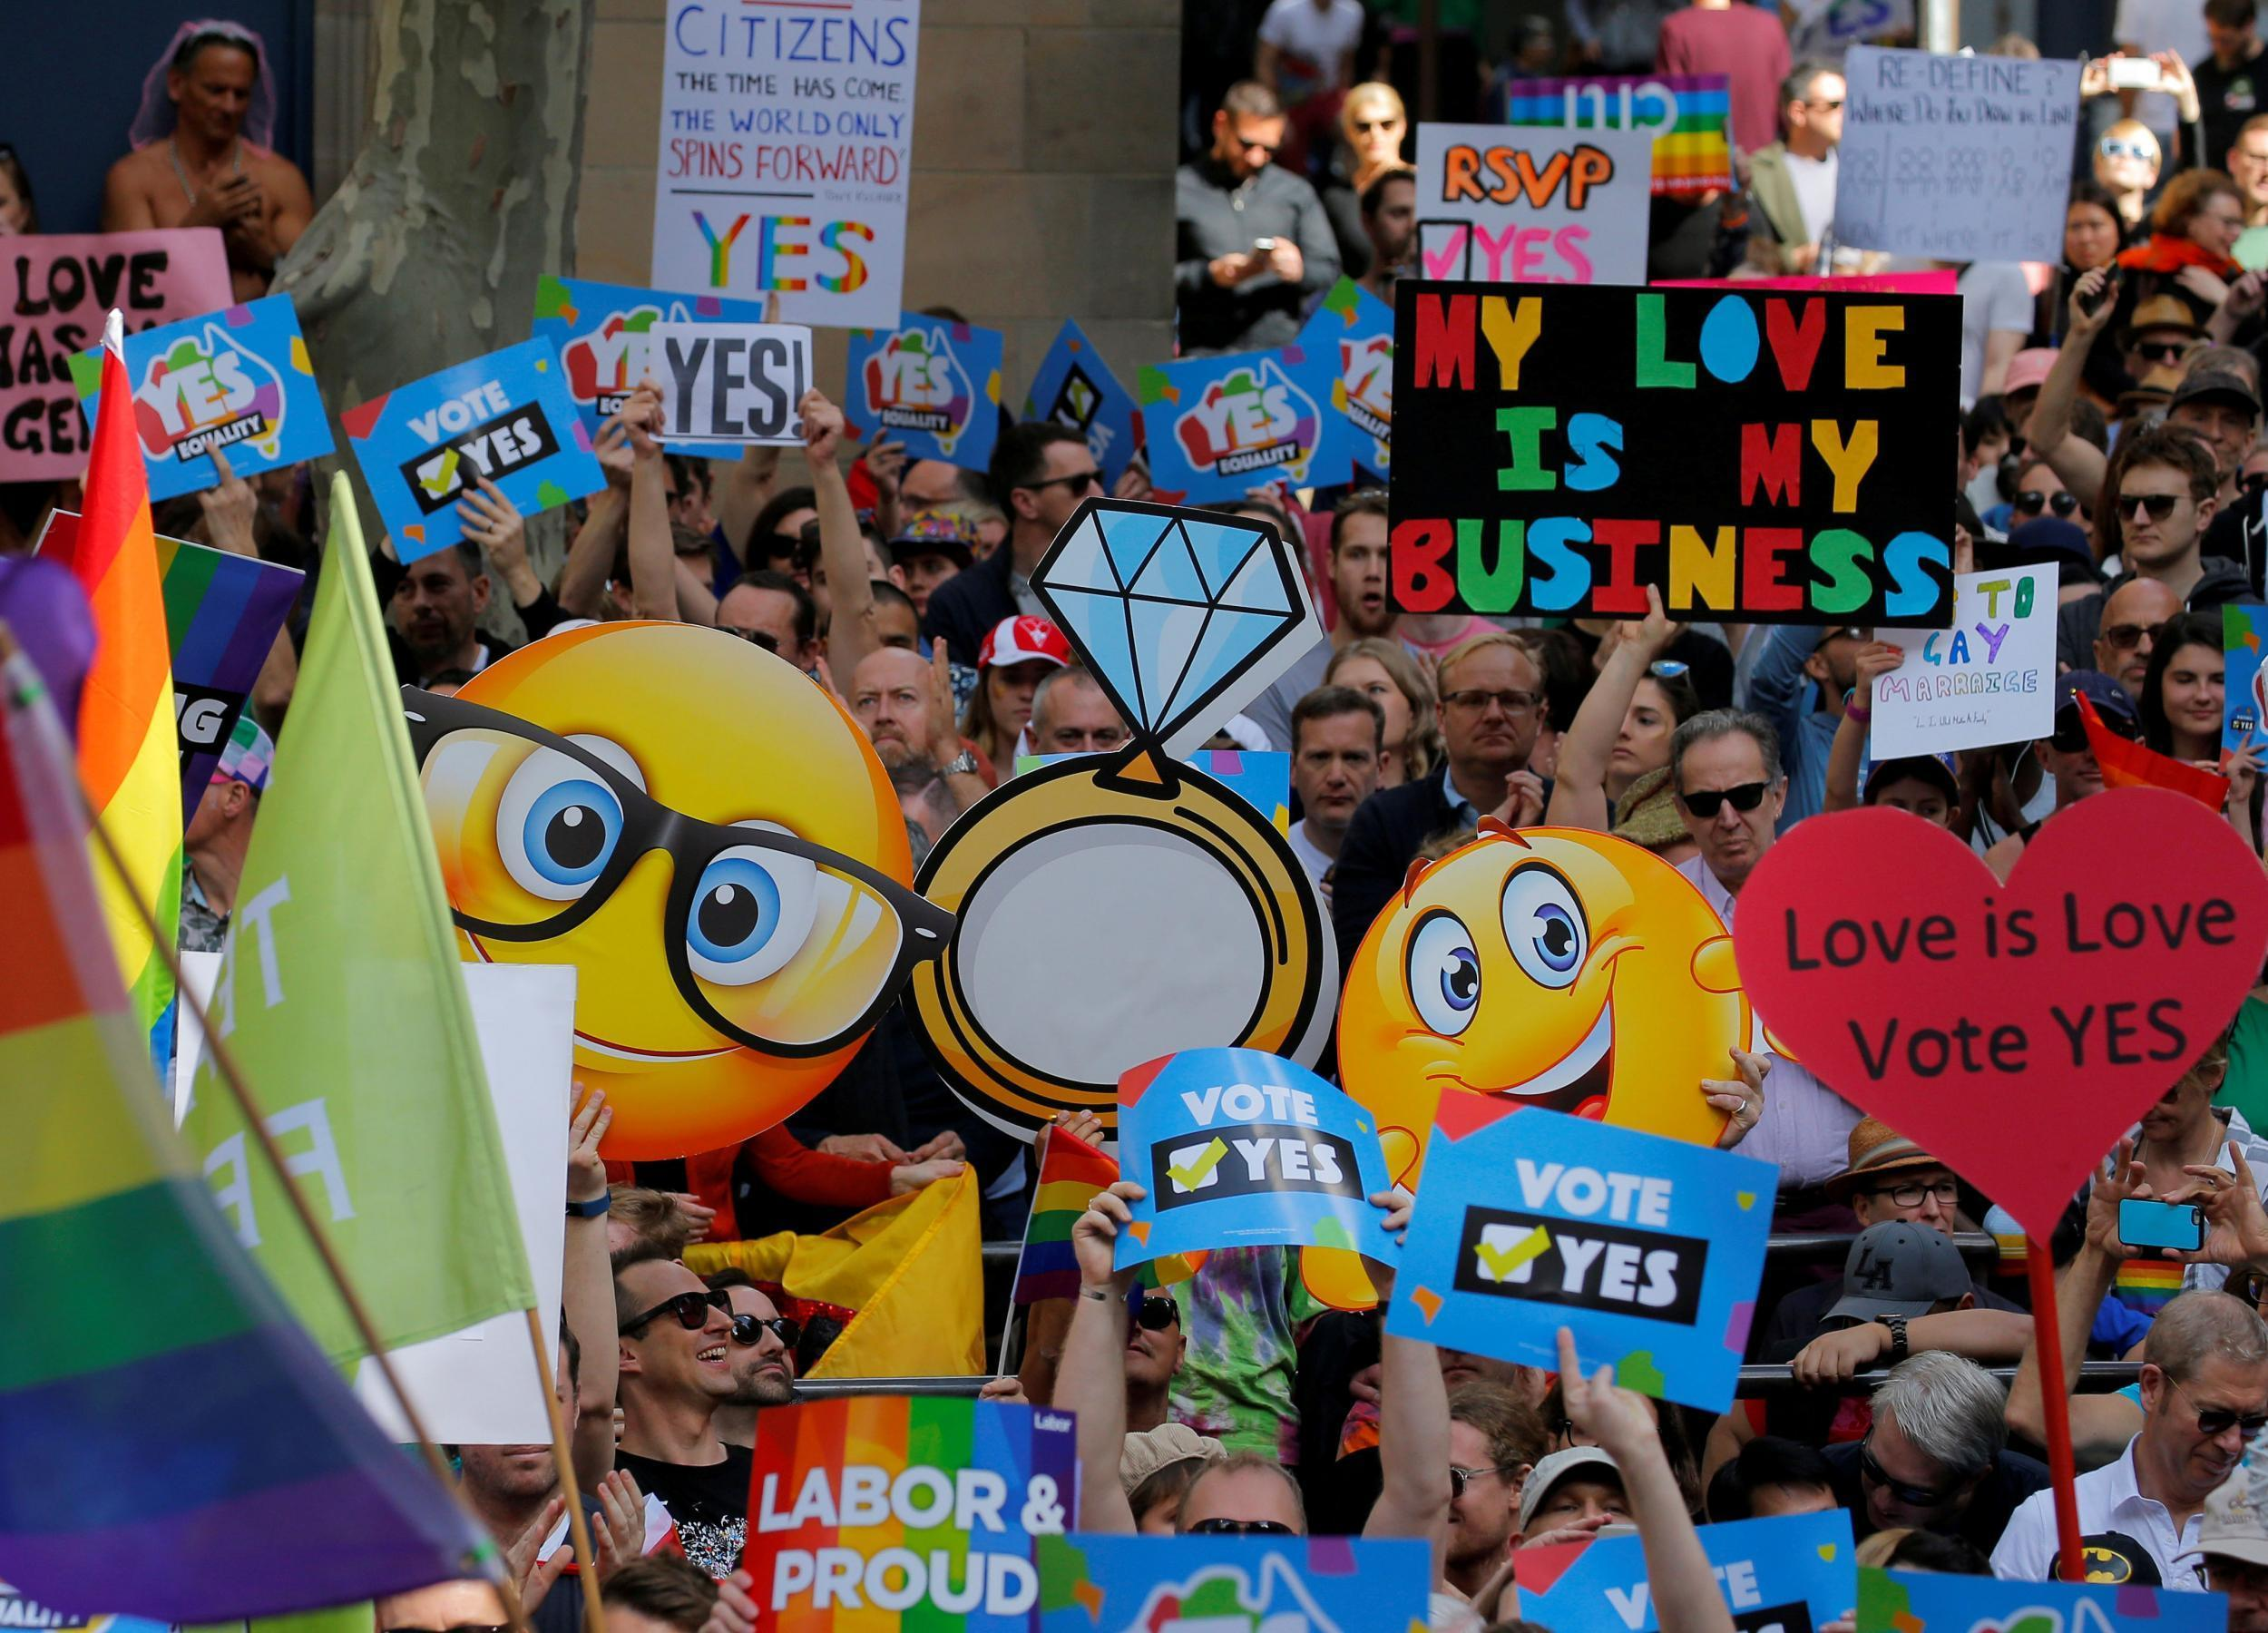 Australia Same Sex Marriage Referendum A Complete Waste Of Time Laptop Stand Jati Lgbt Community Says The Independent